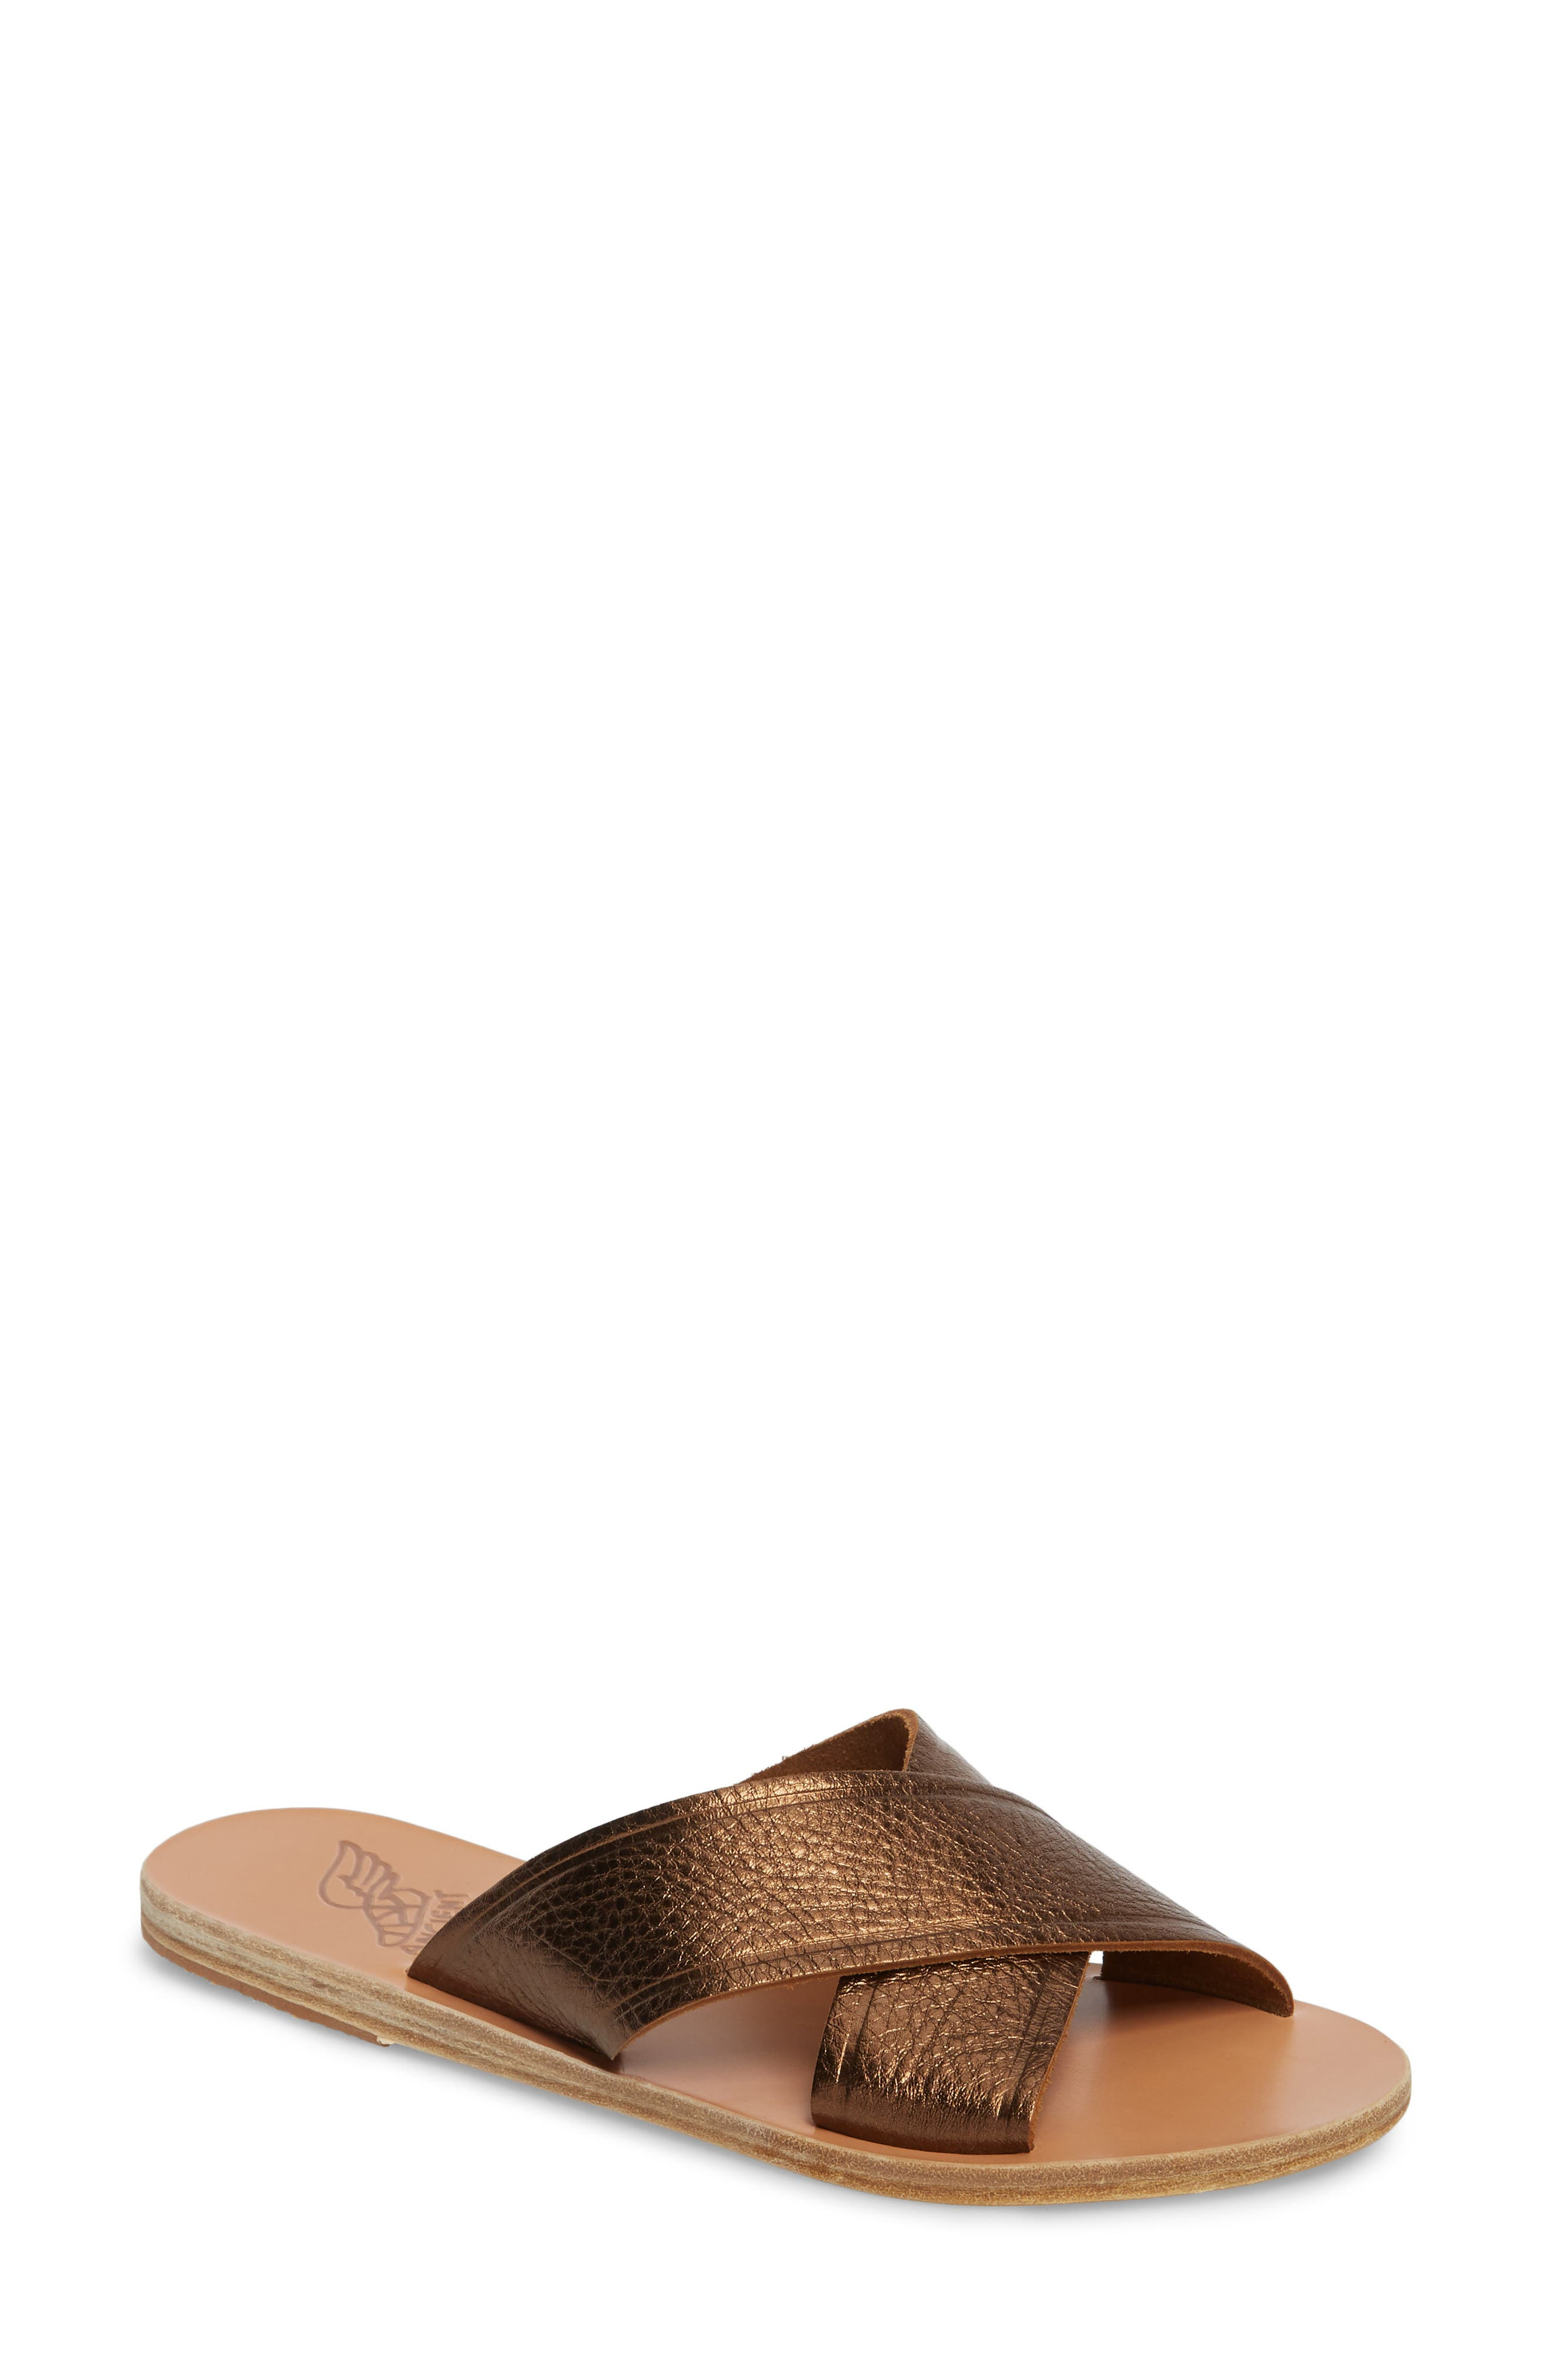 Thais Slide Sandal,                         Main,                         color, Bronze/ Coco